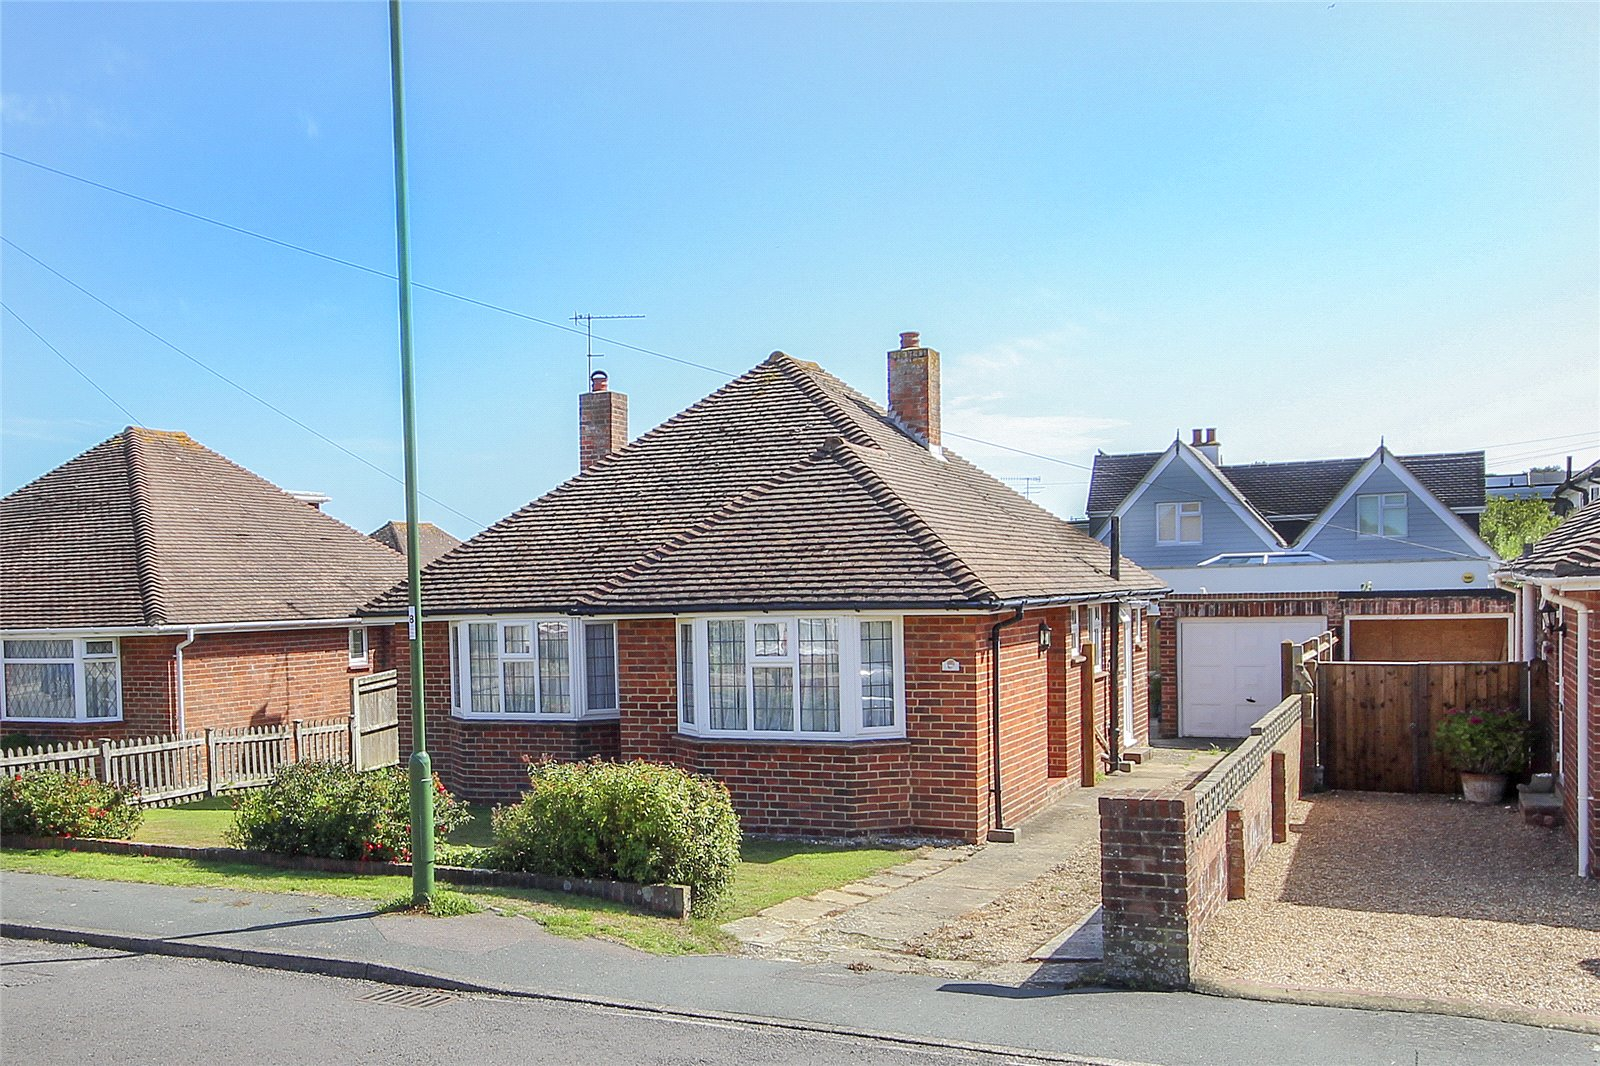 2 bed bungalow for sale in Vermont Drive, East Preston, BN16